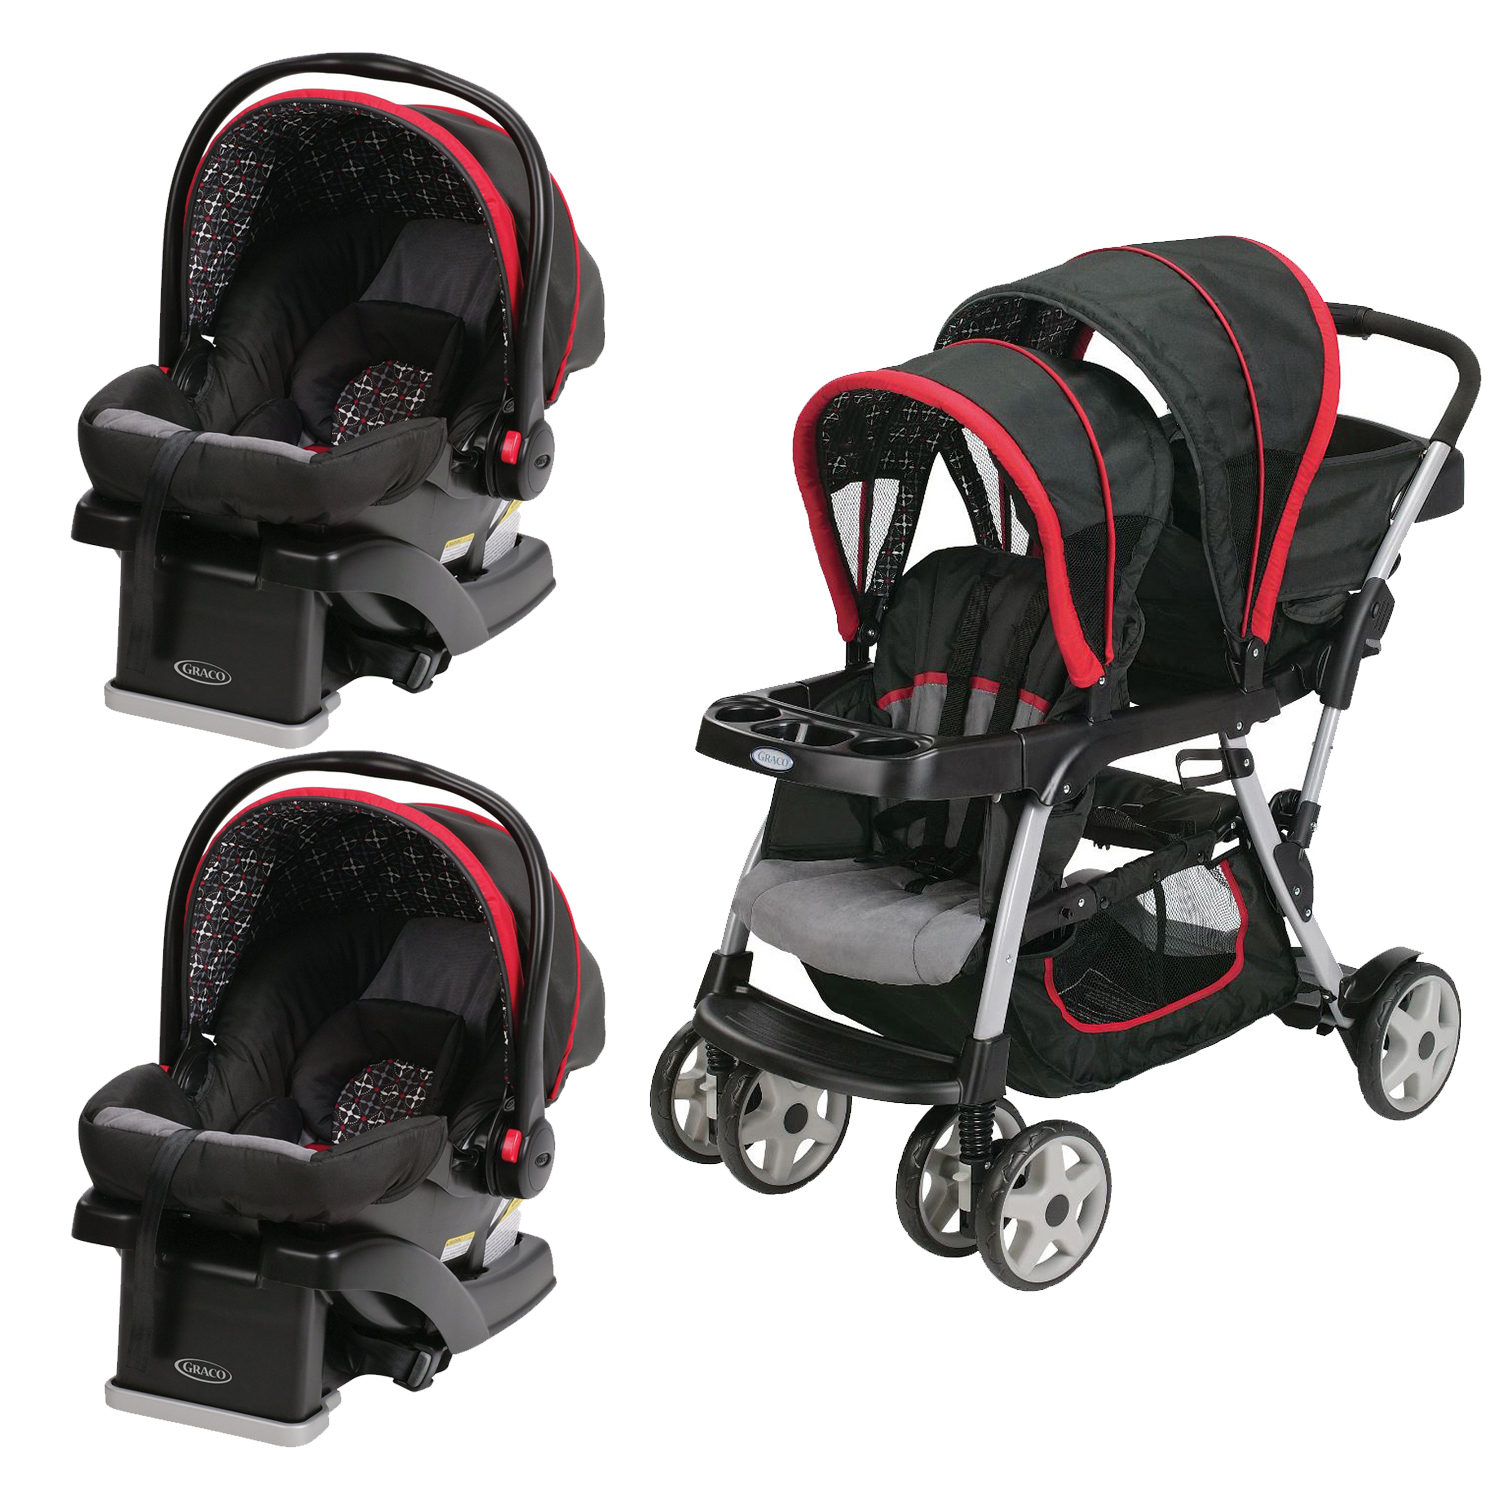 Graco Click Connect Double Seated Stroller and 2 Car Seat...